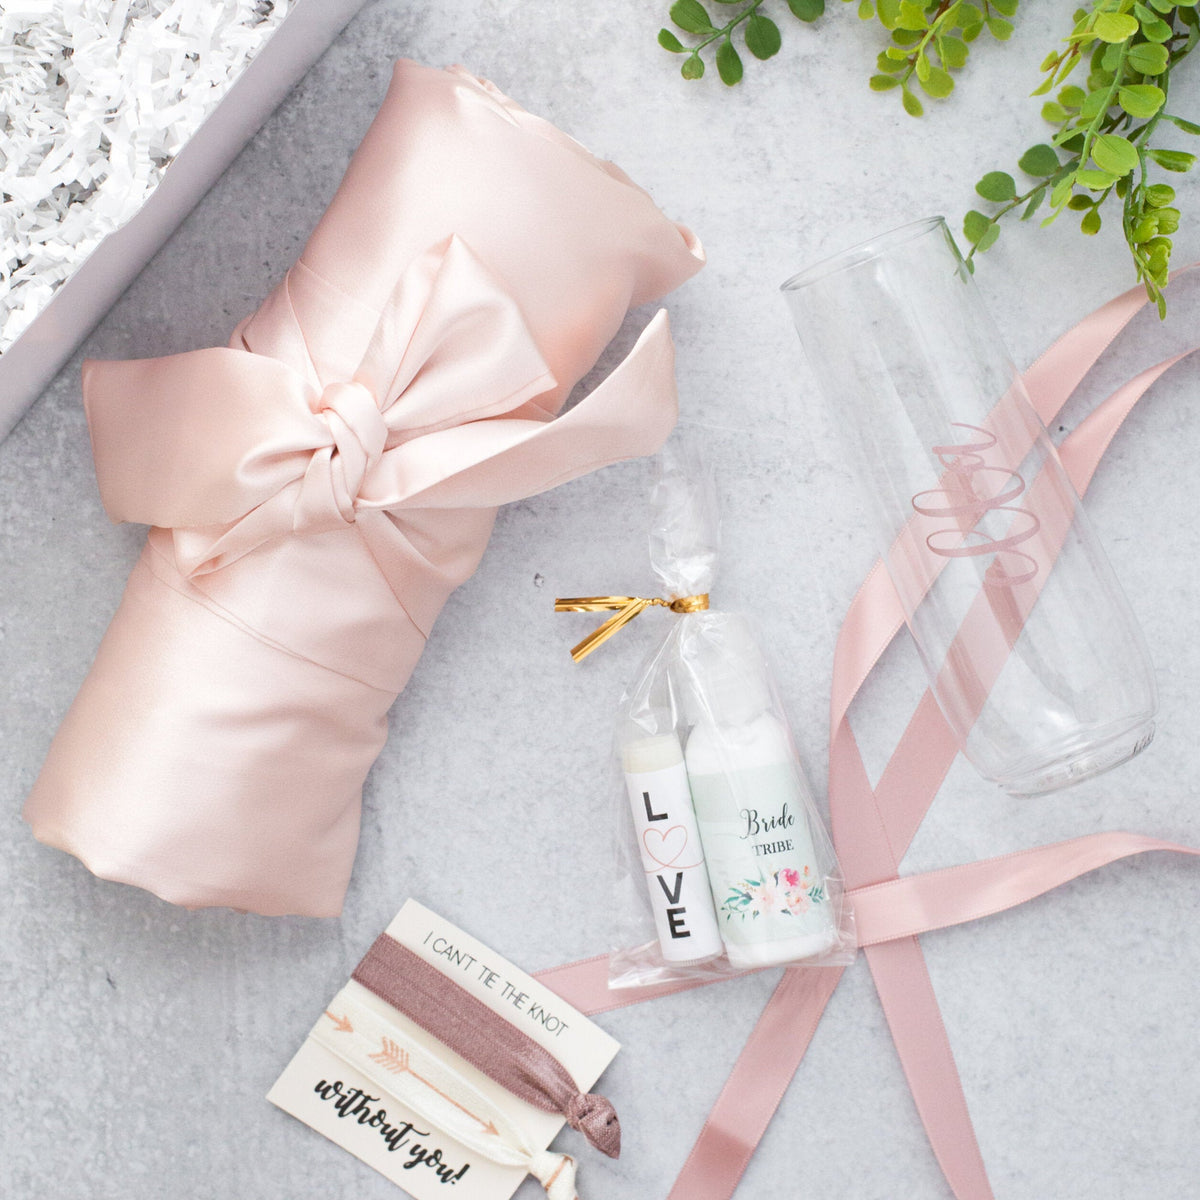 Pamper Me Gift Box